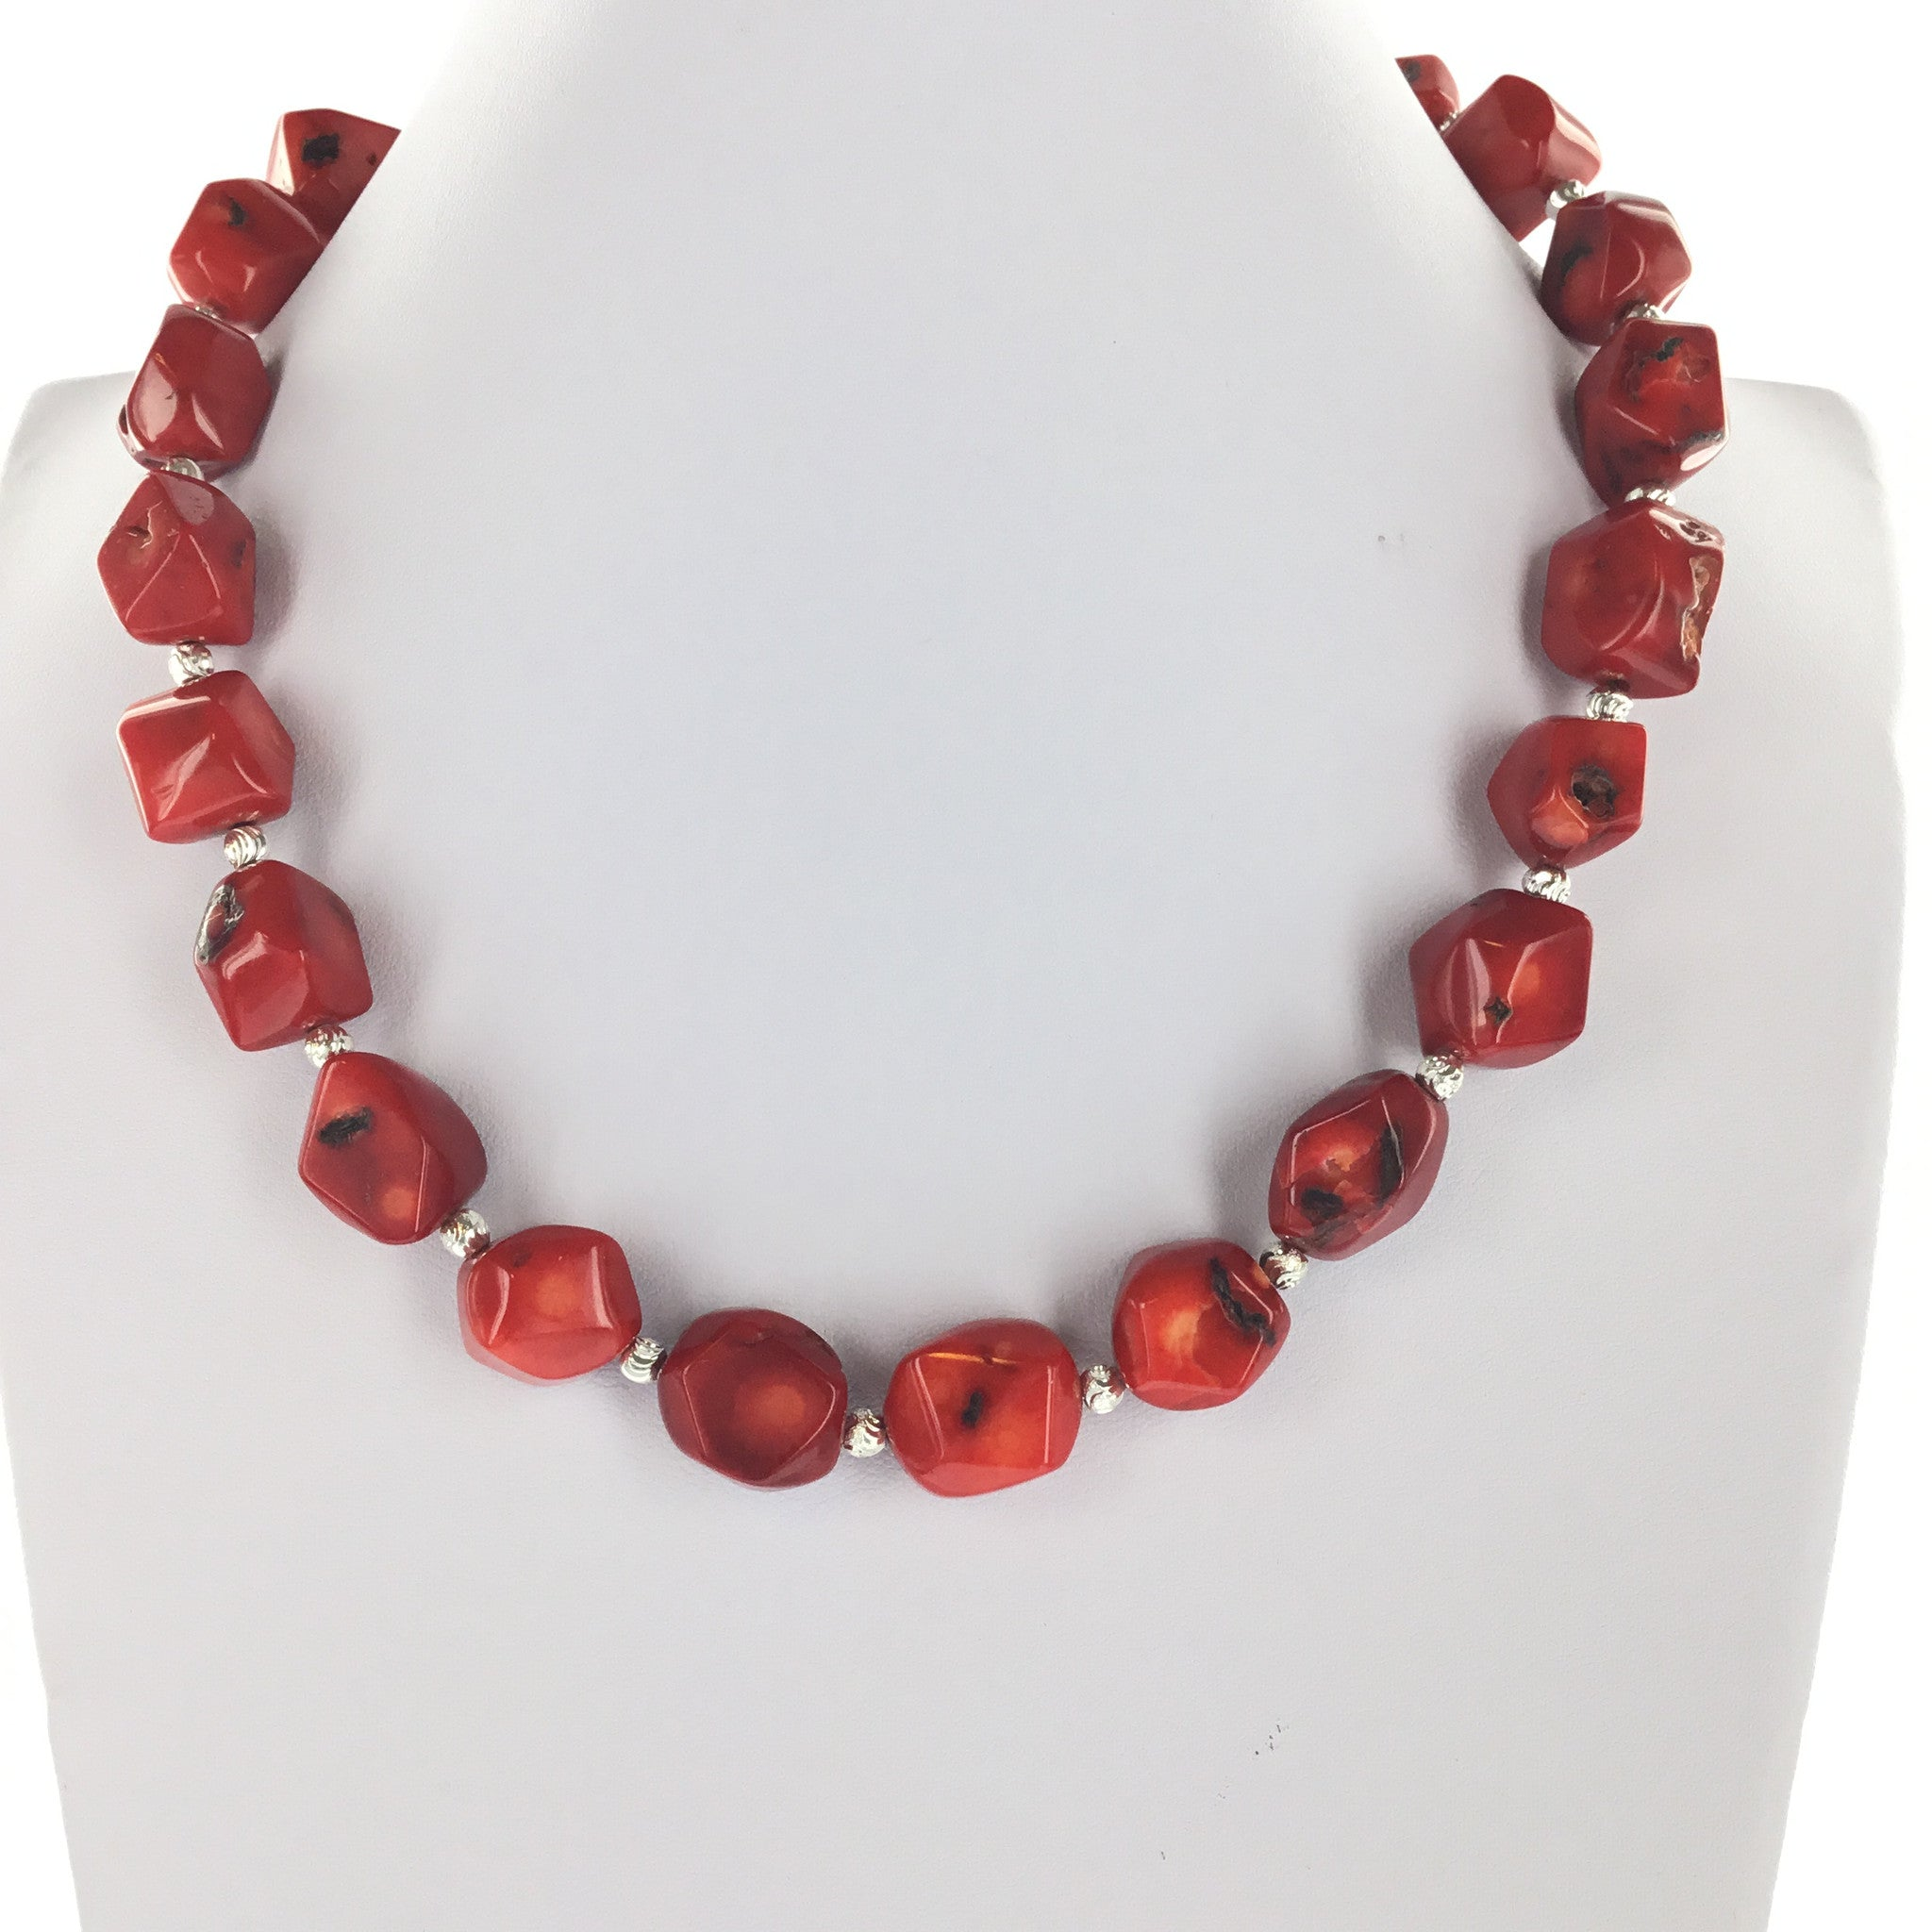 Red Coral and Silver Necklace - Real Chic Boutique  - 4